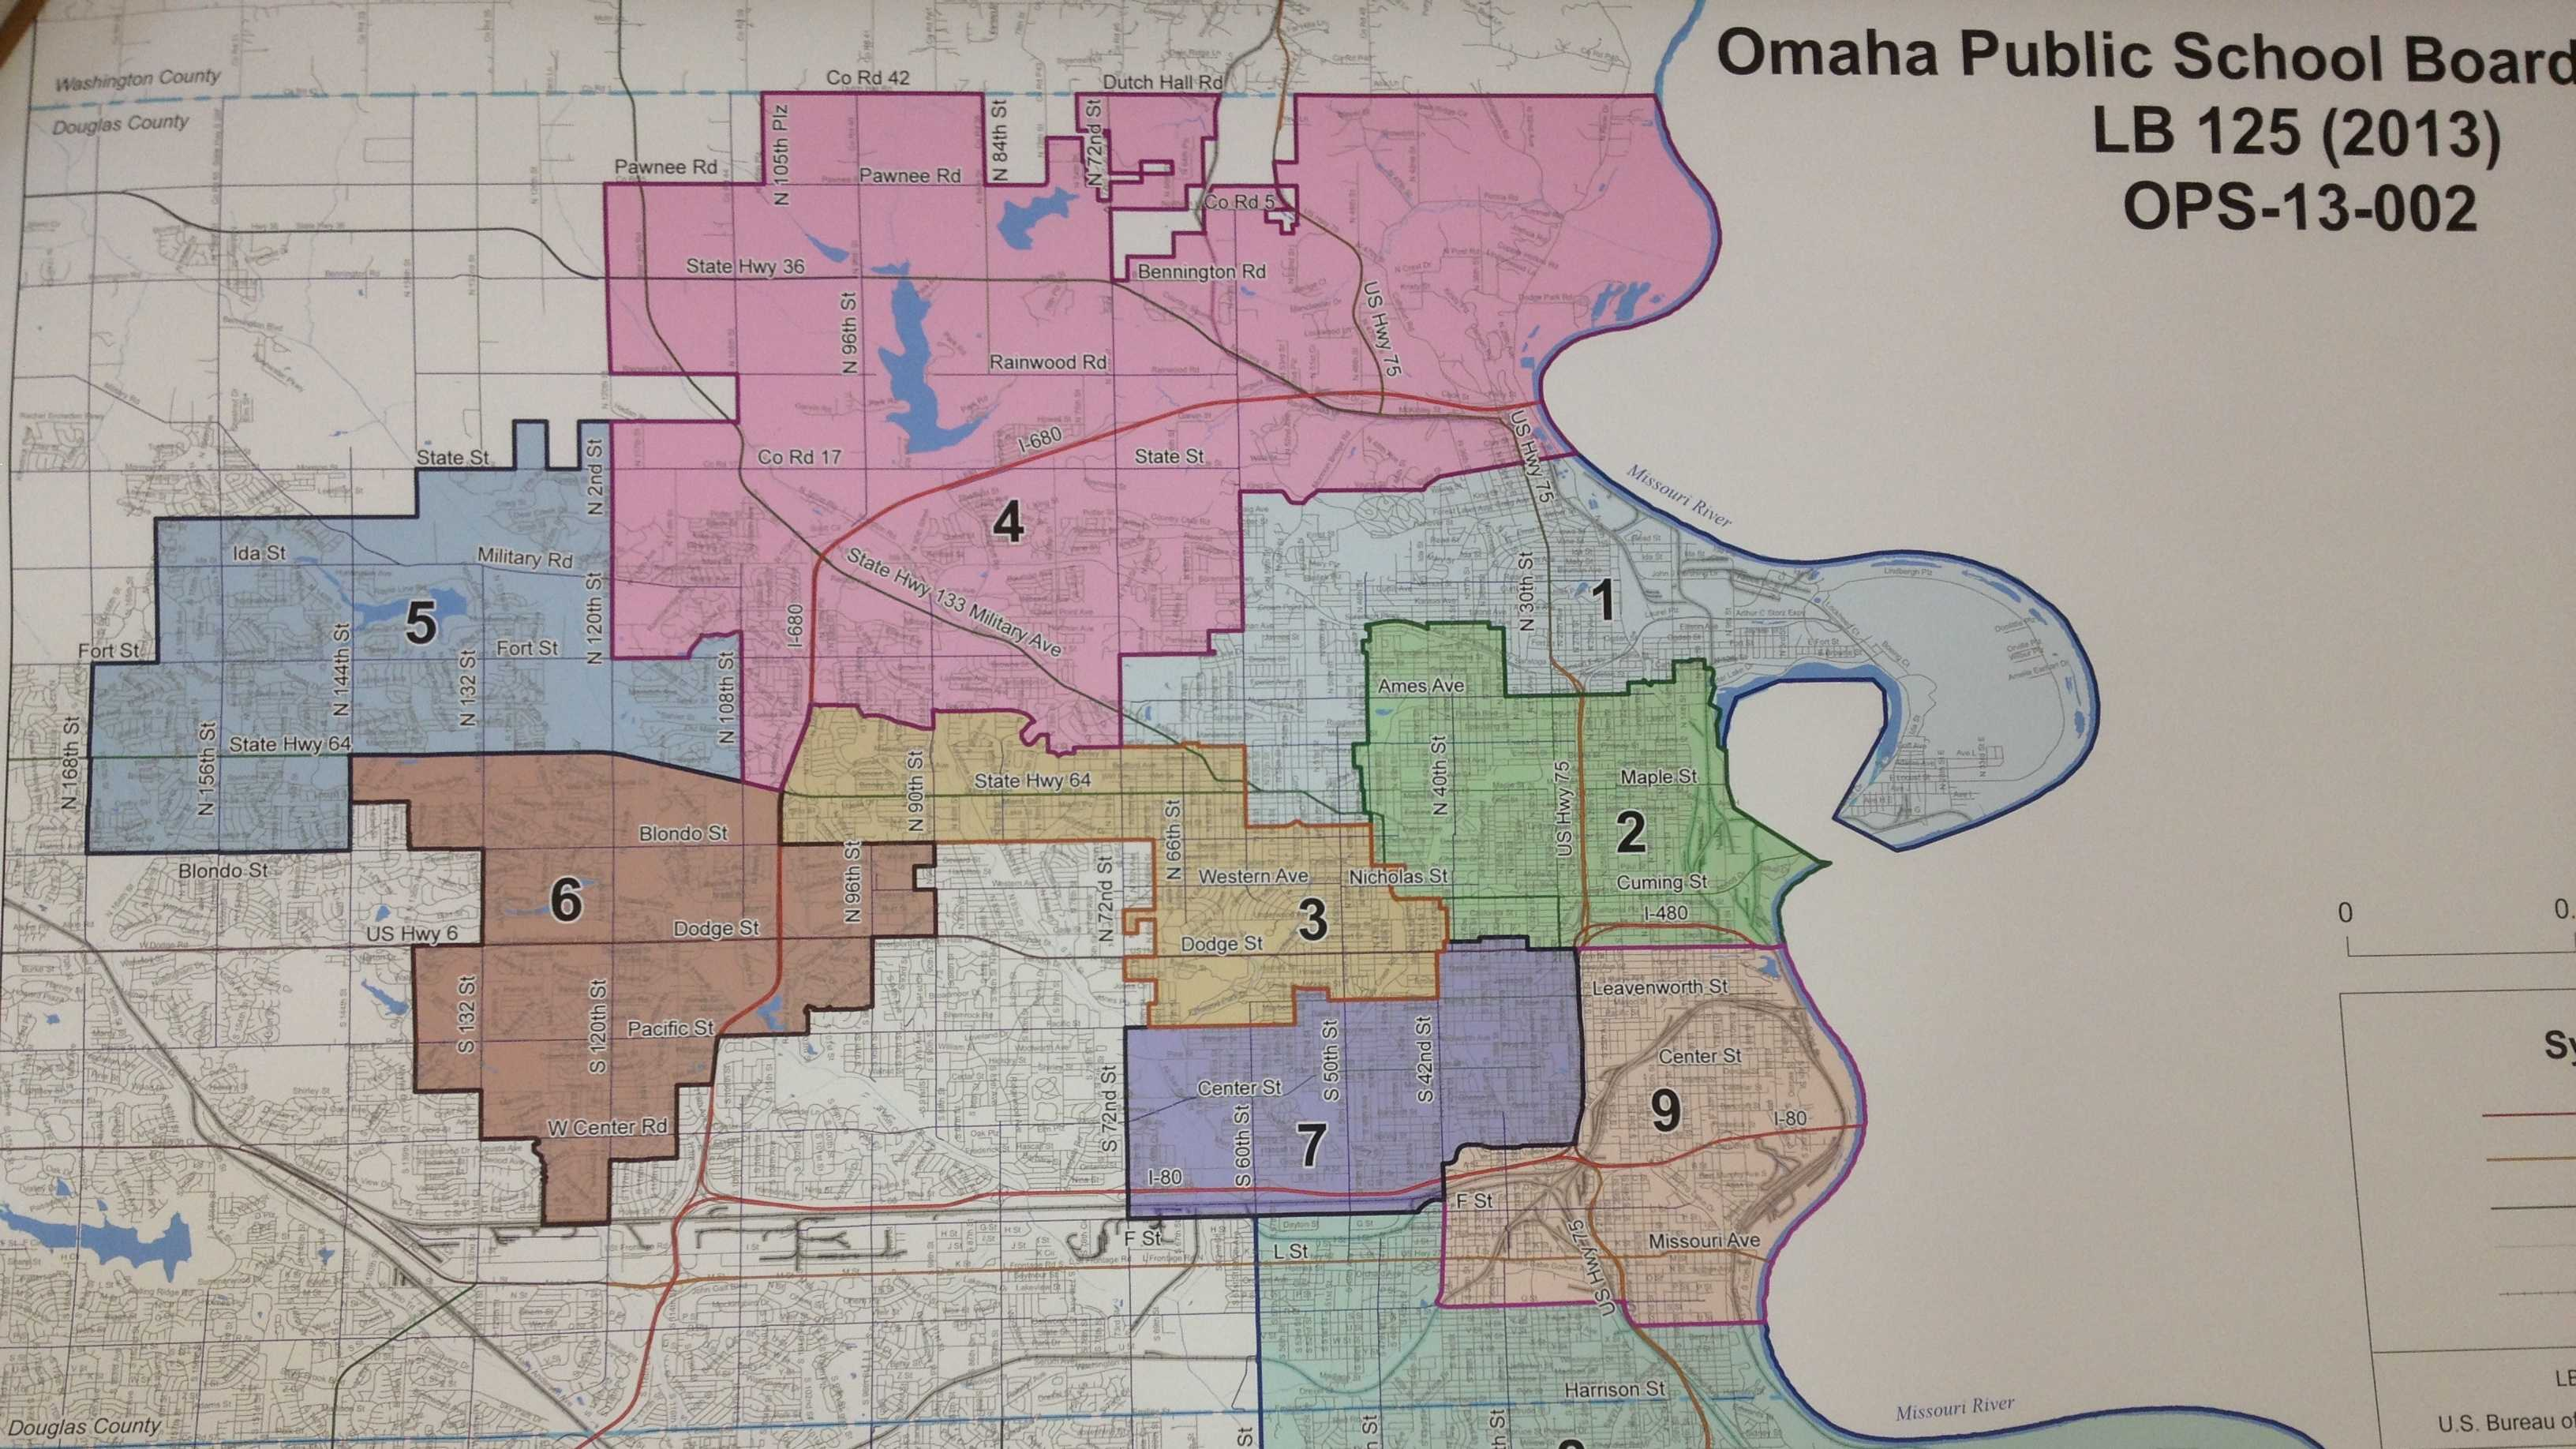 PHOTO: OPS board map